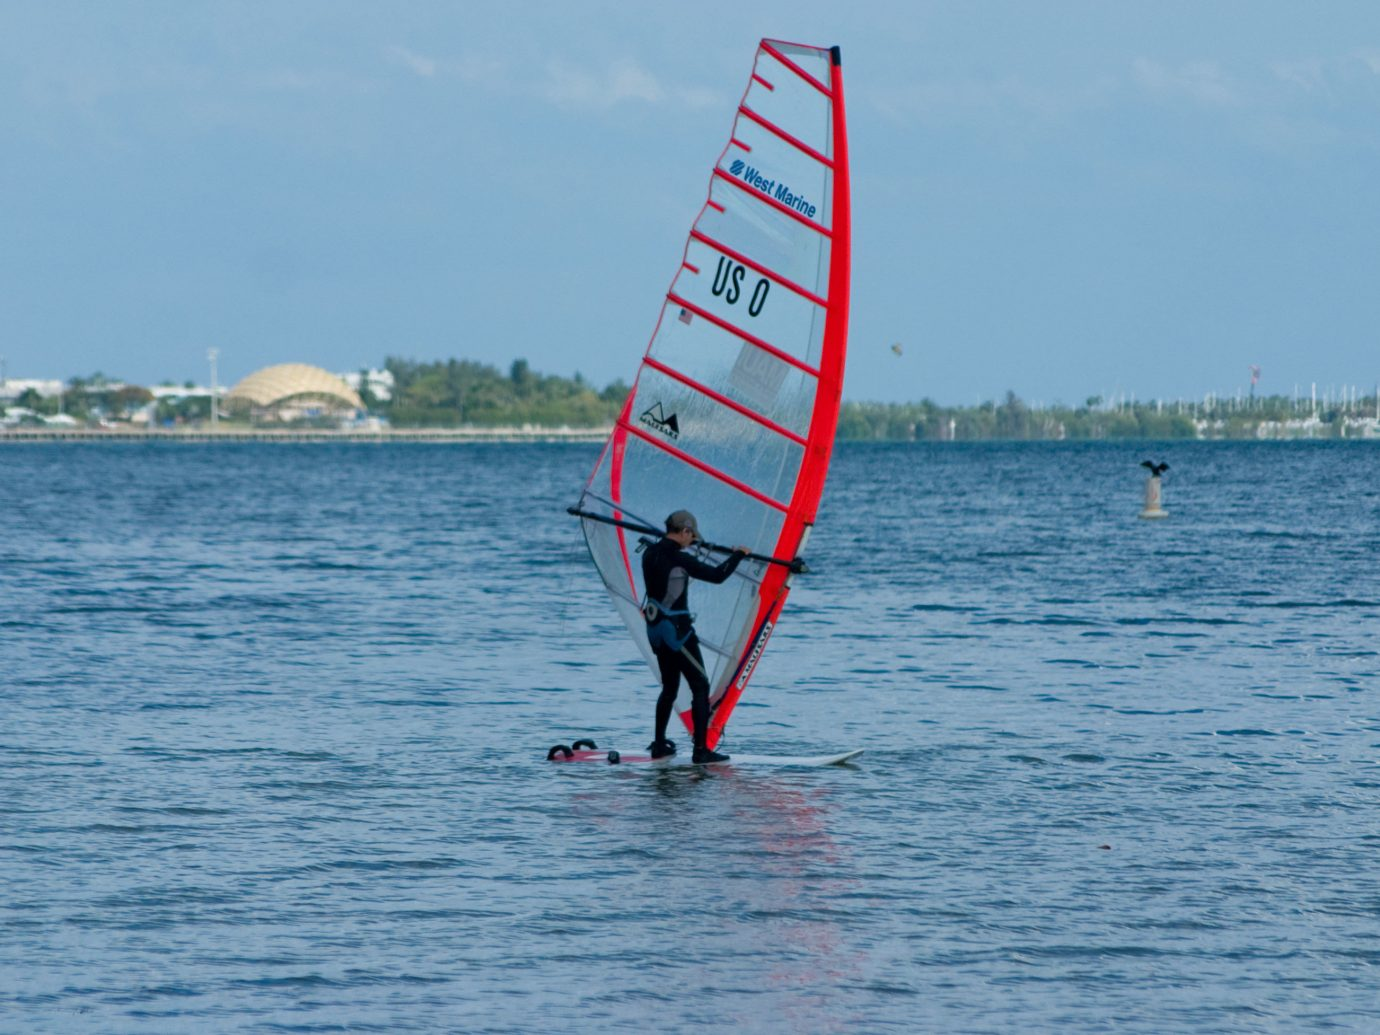 Trip Ideas water sky outdoor windsurfing Boat sail sailboat dinghy sailing sports sailing ship water sport vehicle wind surfing Ocean watercraft sailing Sea wind wave boardsport boating surface water sports sailing vessel